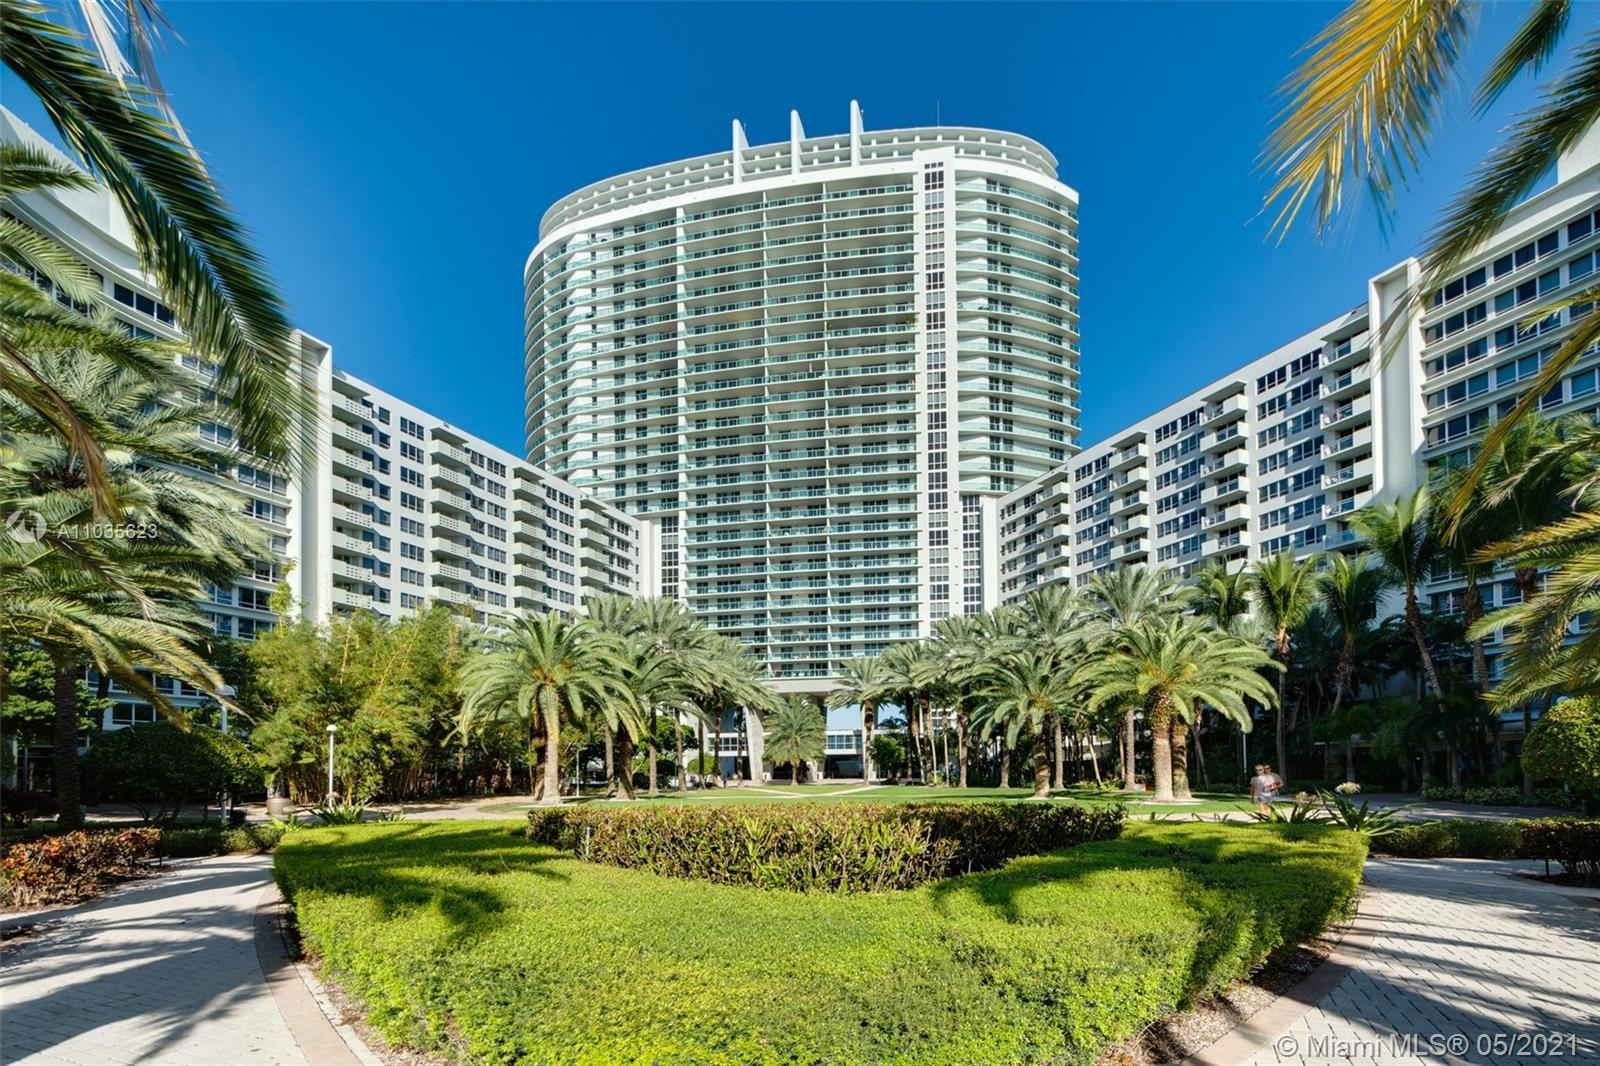 South Beach Gem! One bedroom with spectacular bay views in the heart of South Beach. All amenities b